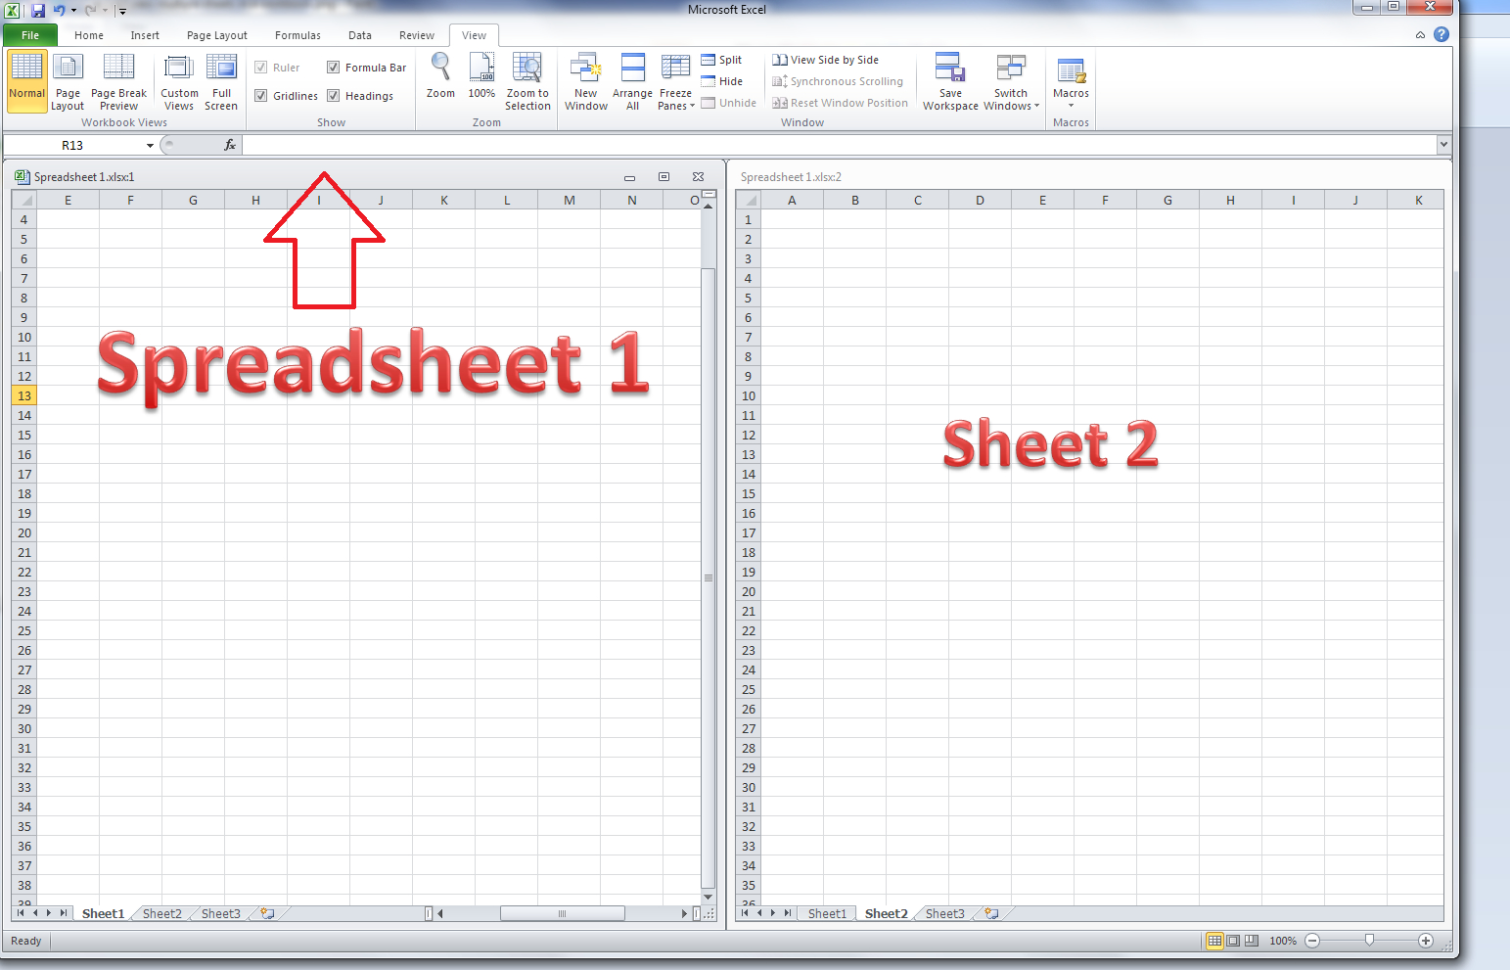 How Do I View Two Sheets Of An Excel Workbook At The Same Time For Help With Excel Spreadsheets